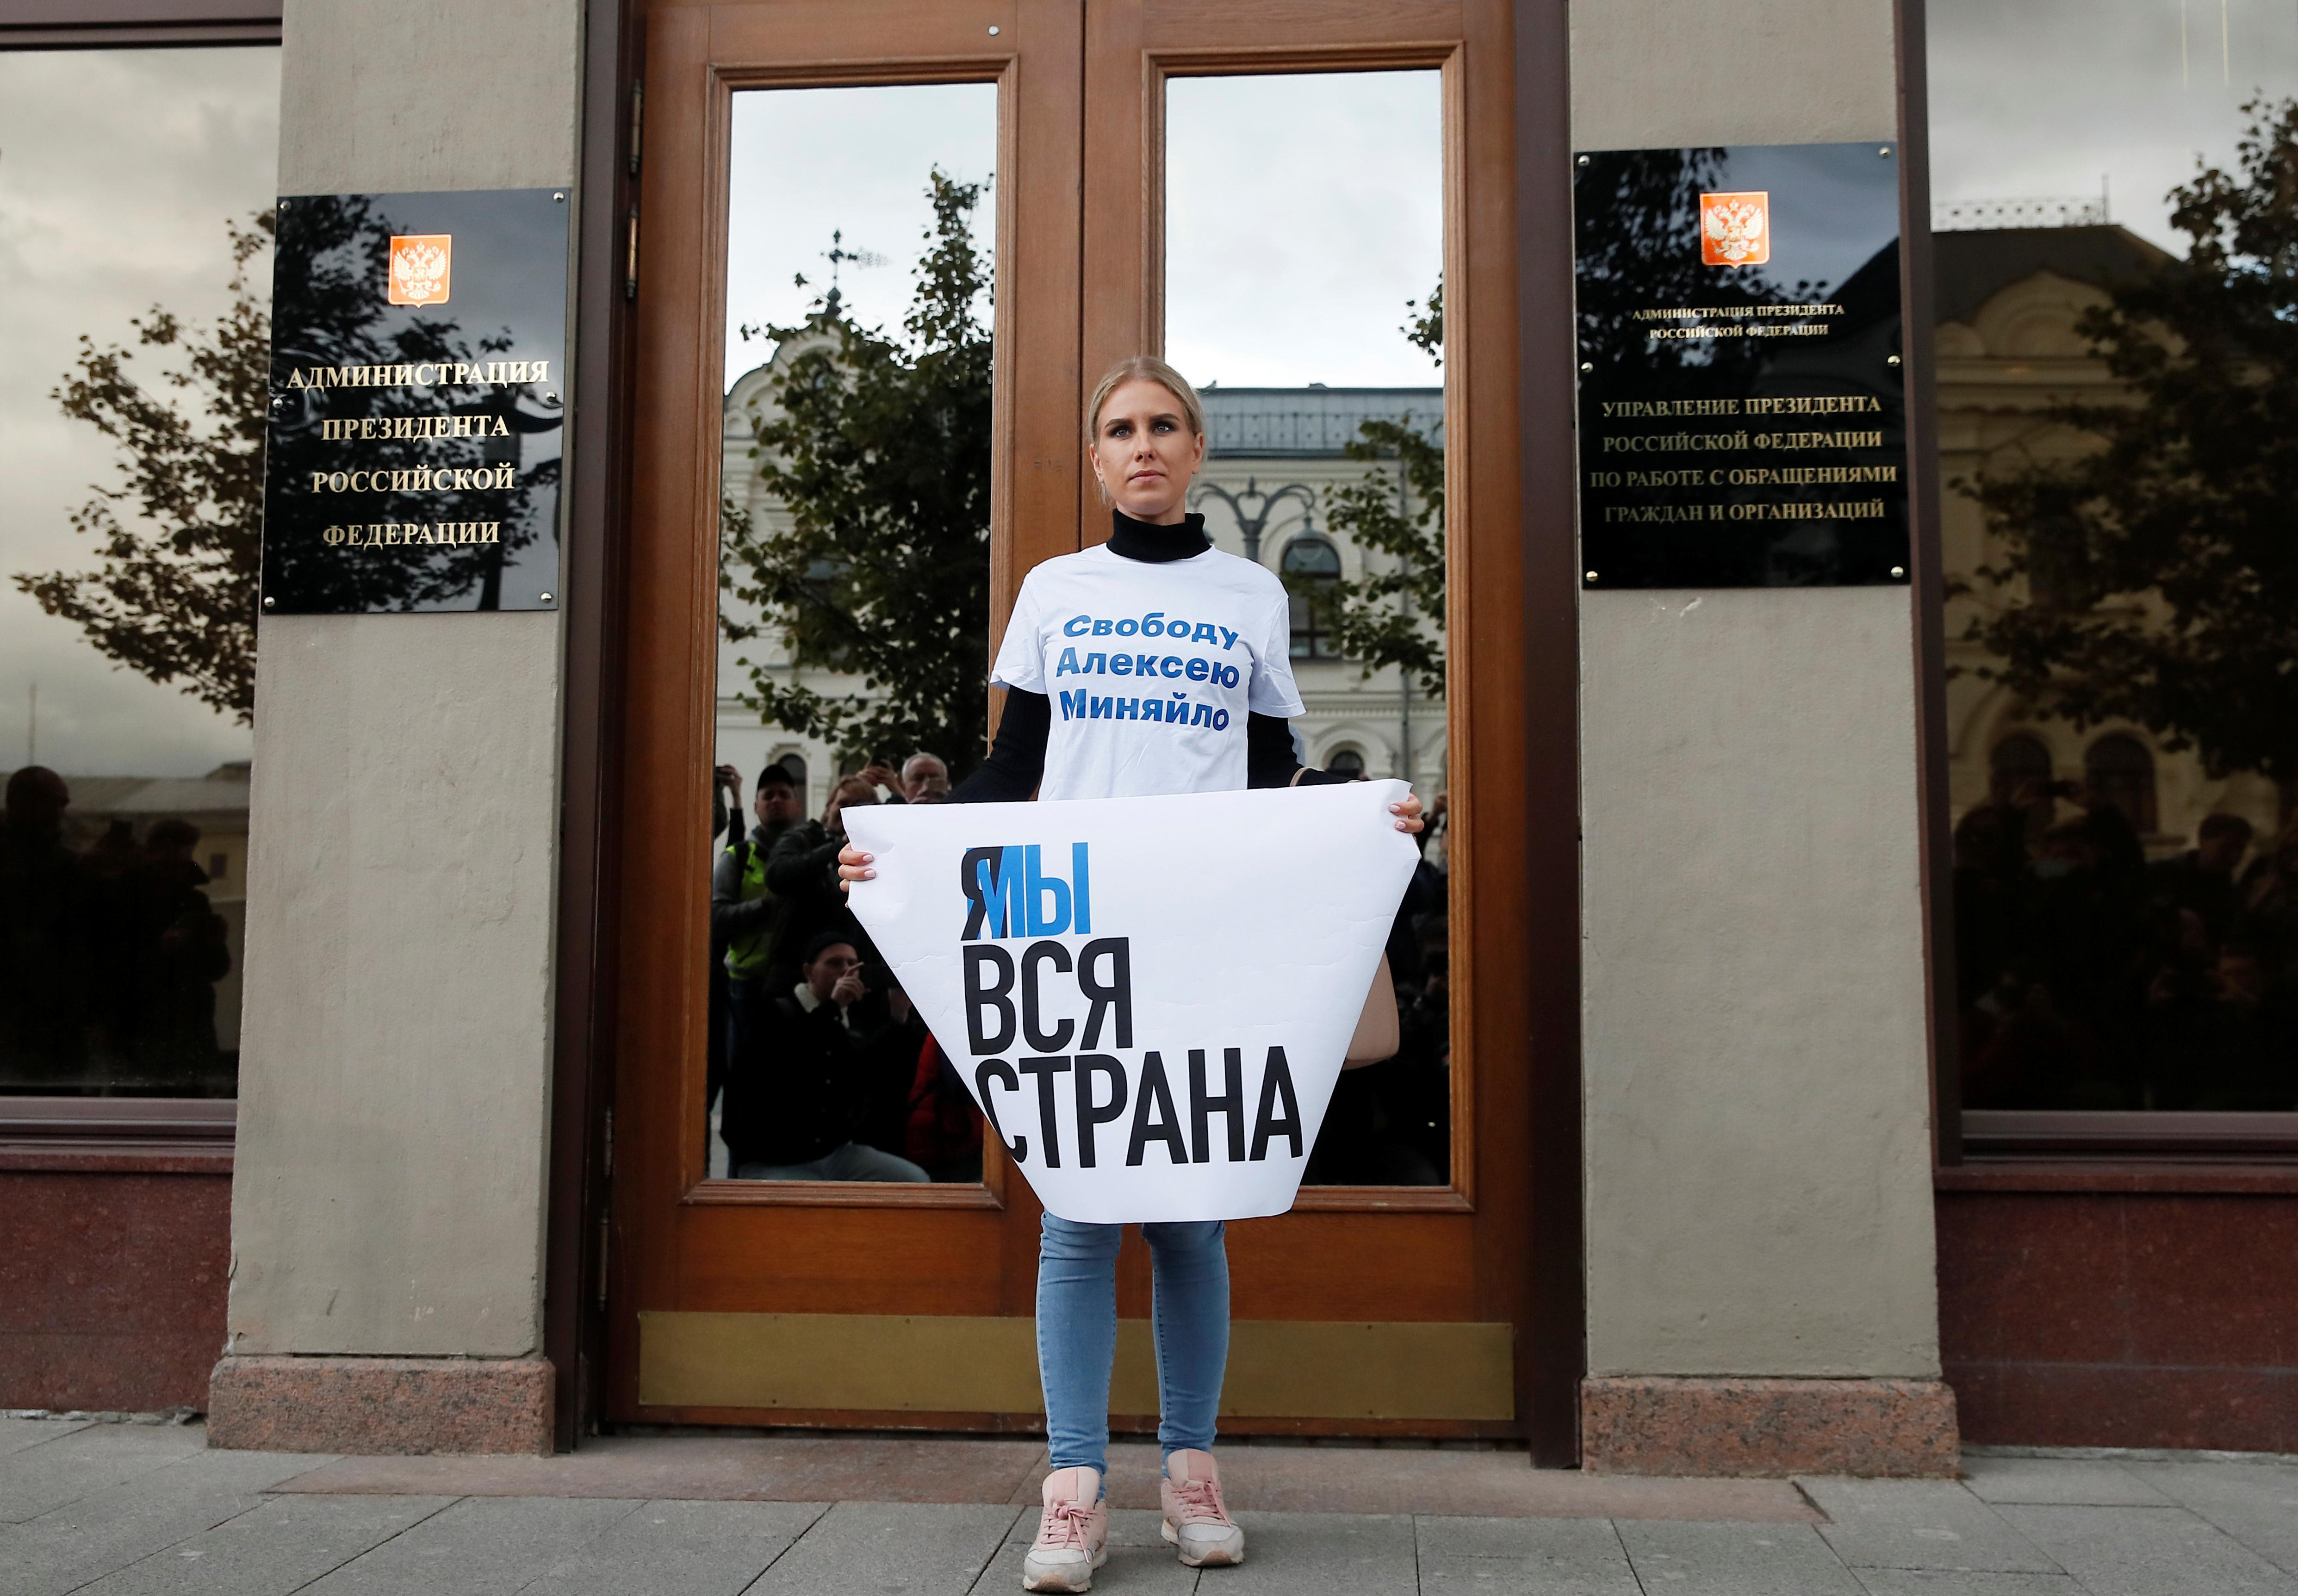 Russia frees jailed protester as teachers, priests demand end to crackdown